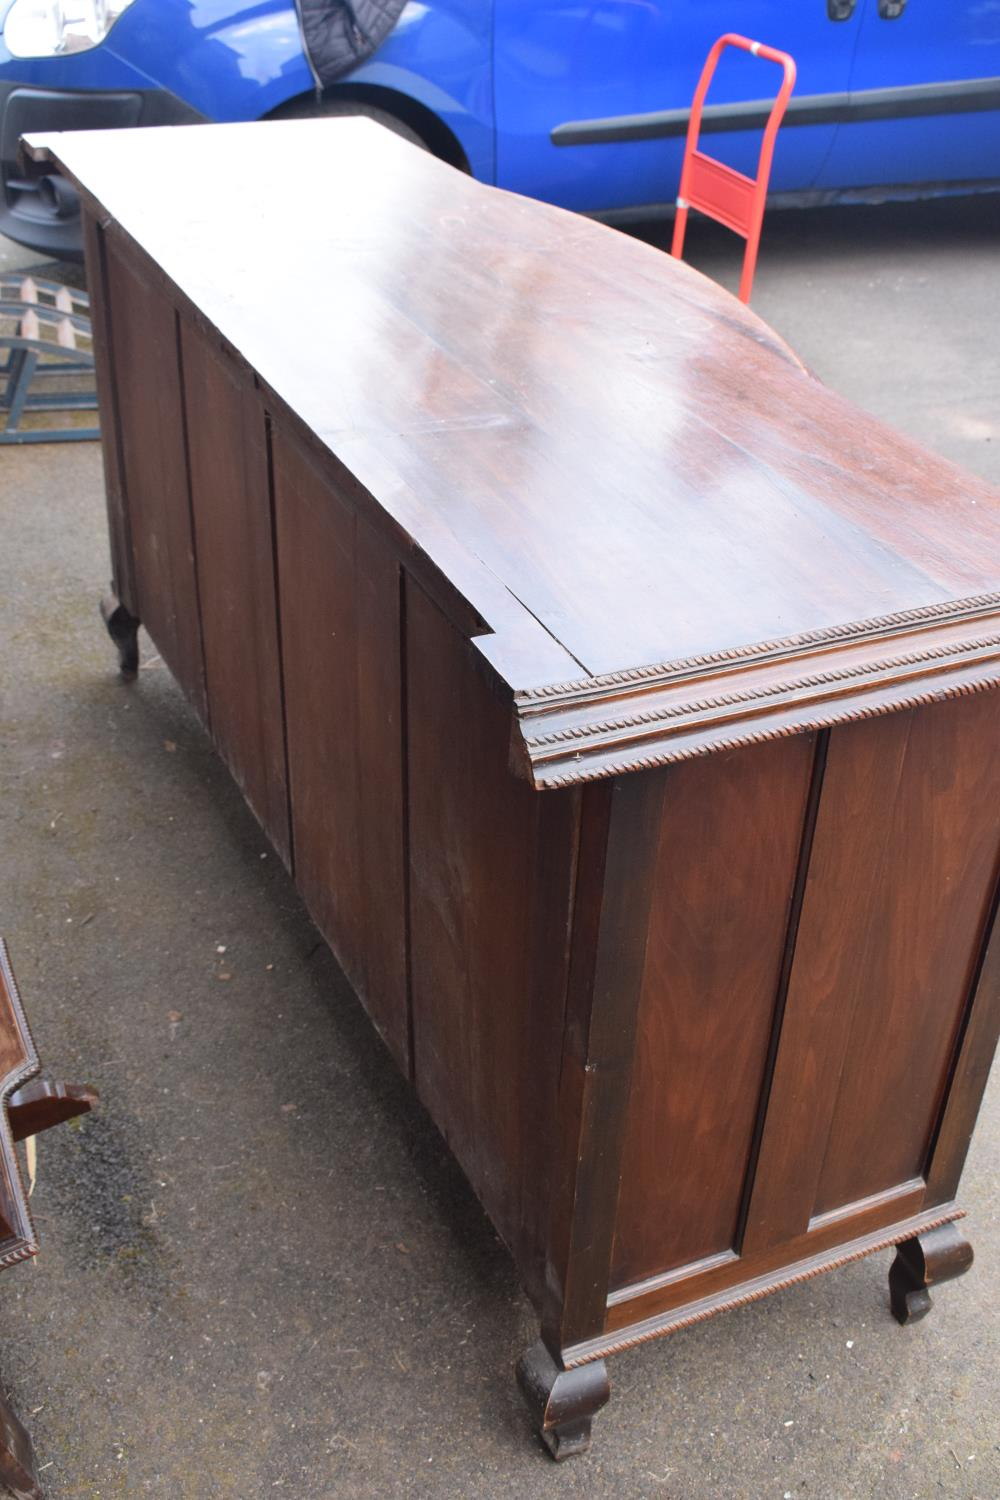 Edwardian large carved oak mirror backed sideboard. 178 x 64 x 224cm height. In good functional - Image 18 of 18